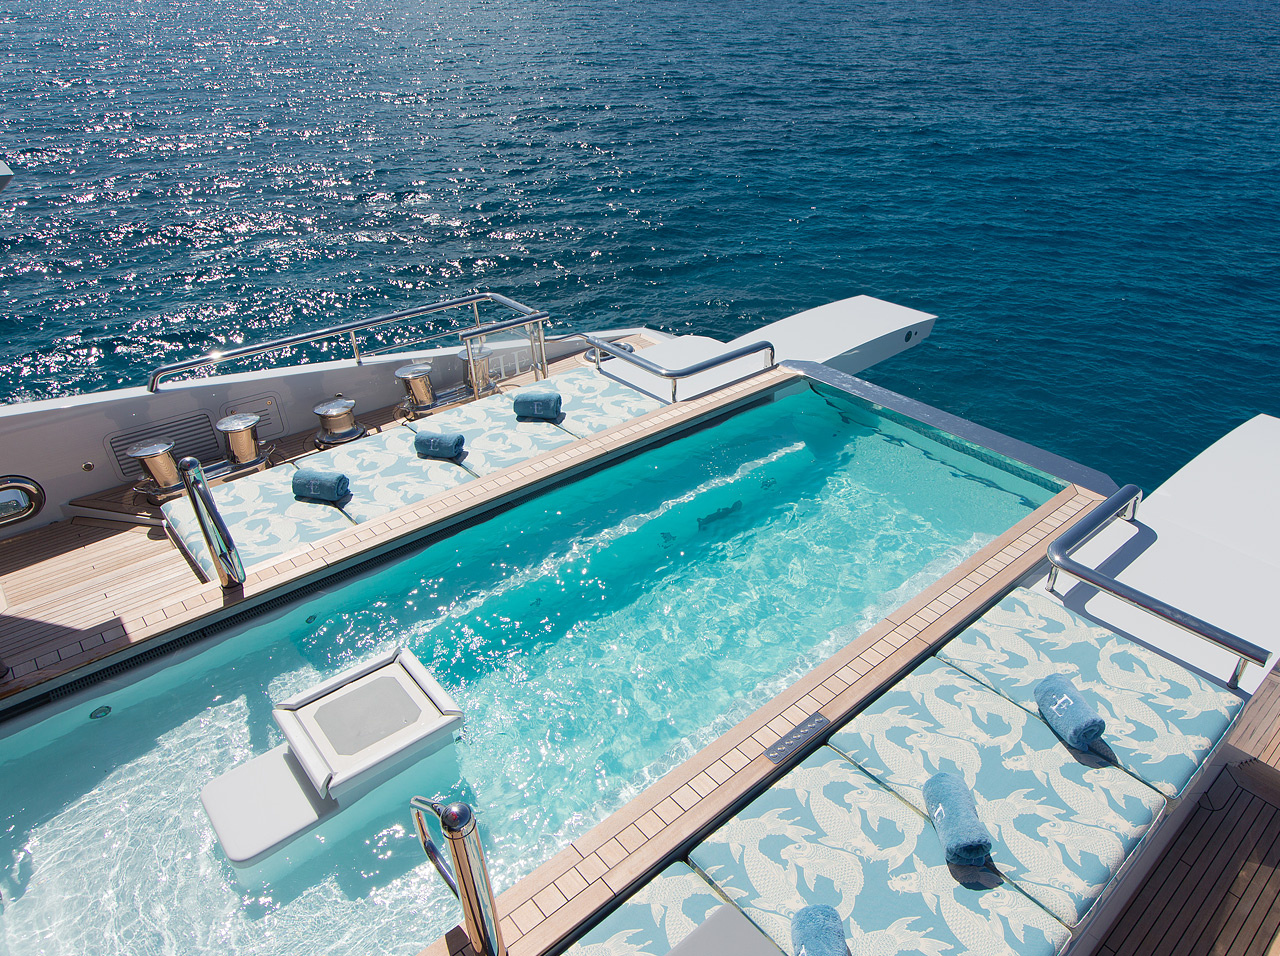 Luxusyachten mit pool  Luxusyachten Mit Pool | loopele.com